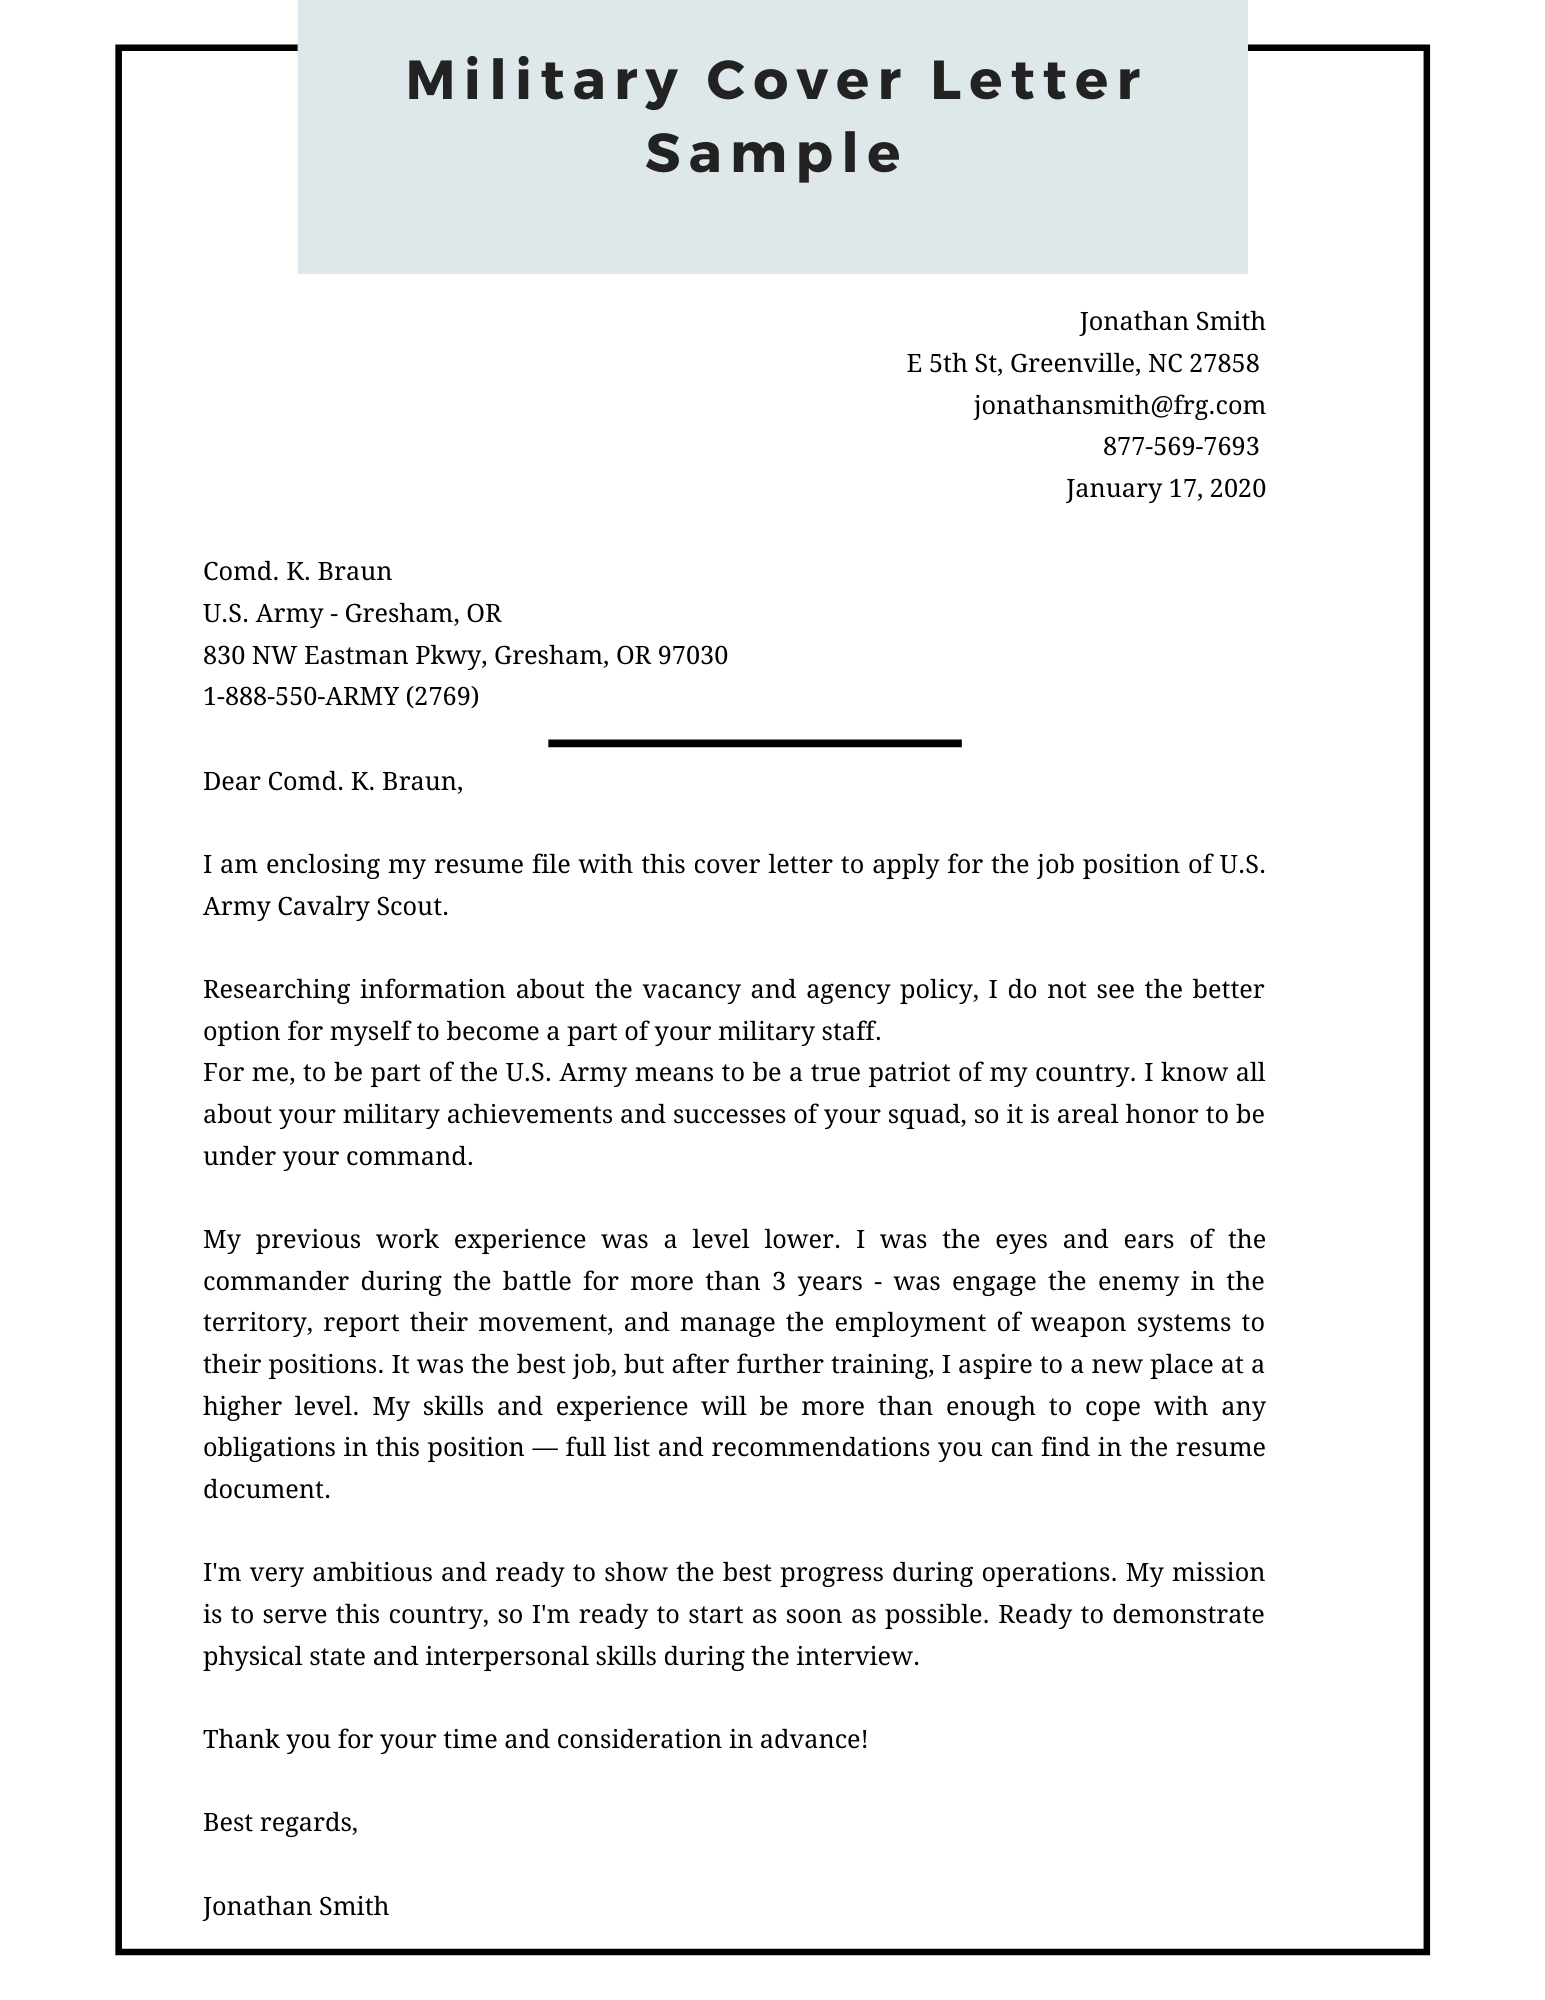 Military Cover Letter Sample Pdf Word Cover Letter Examples